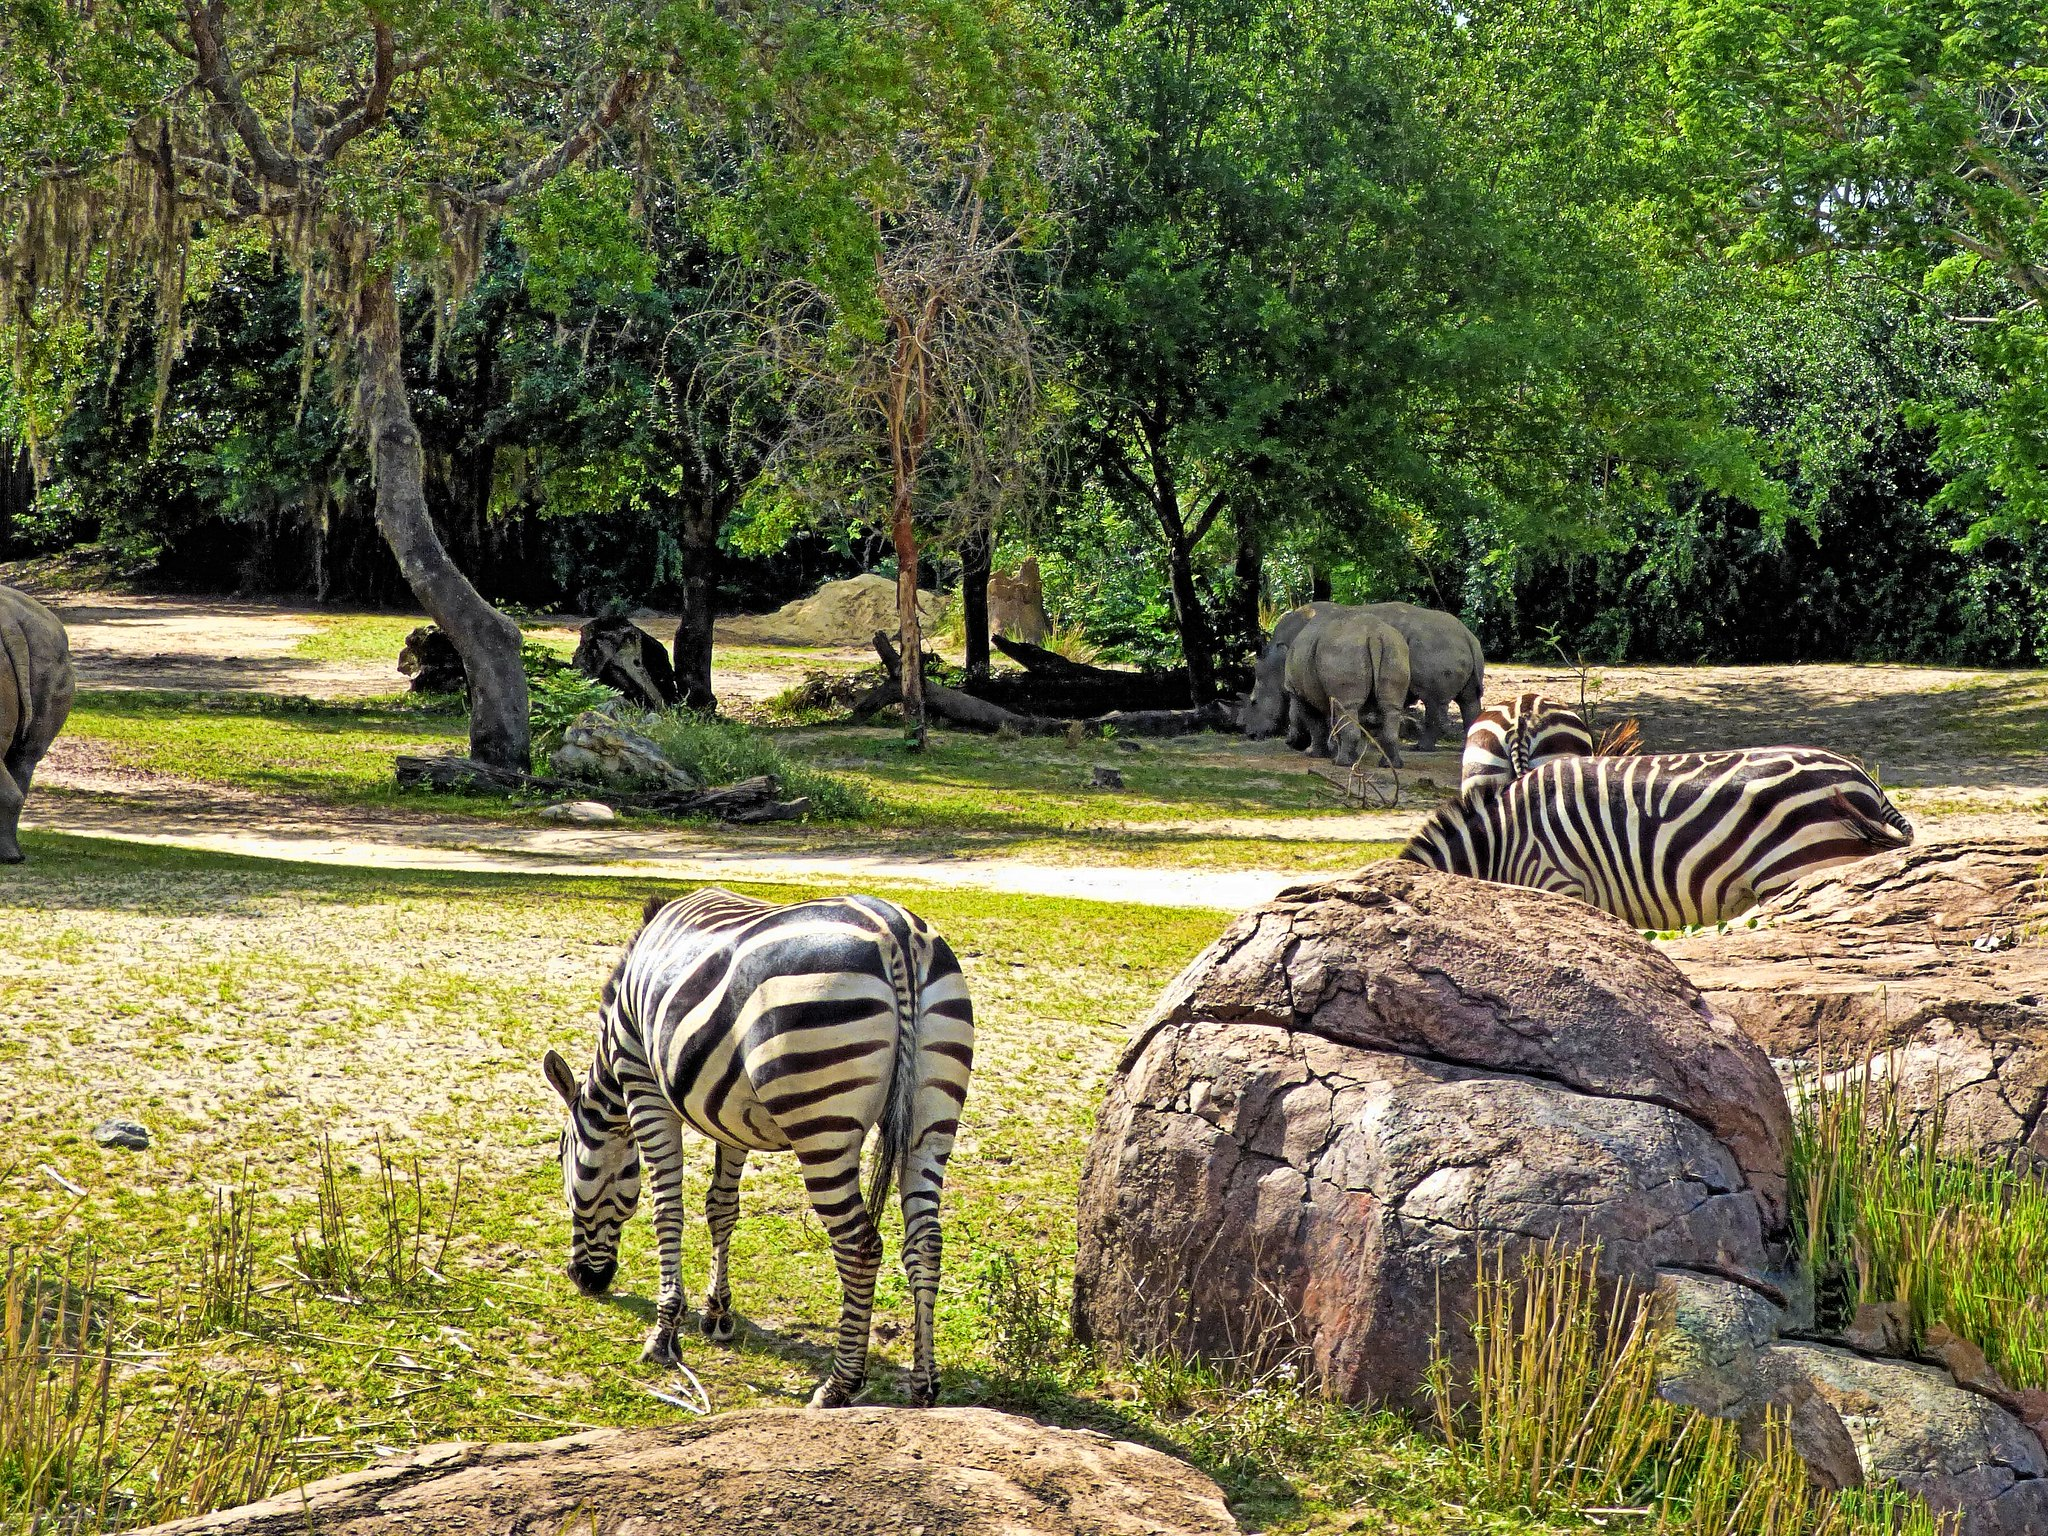 zebras and rhinos in forest